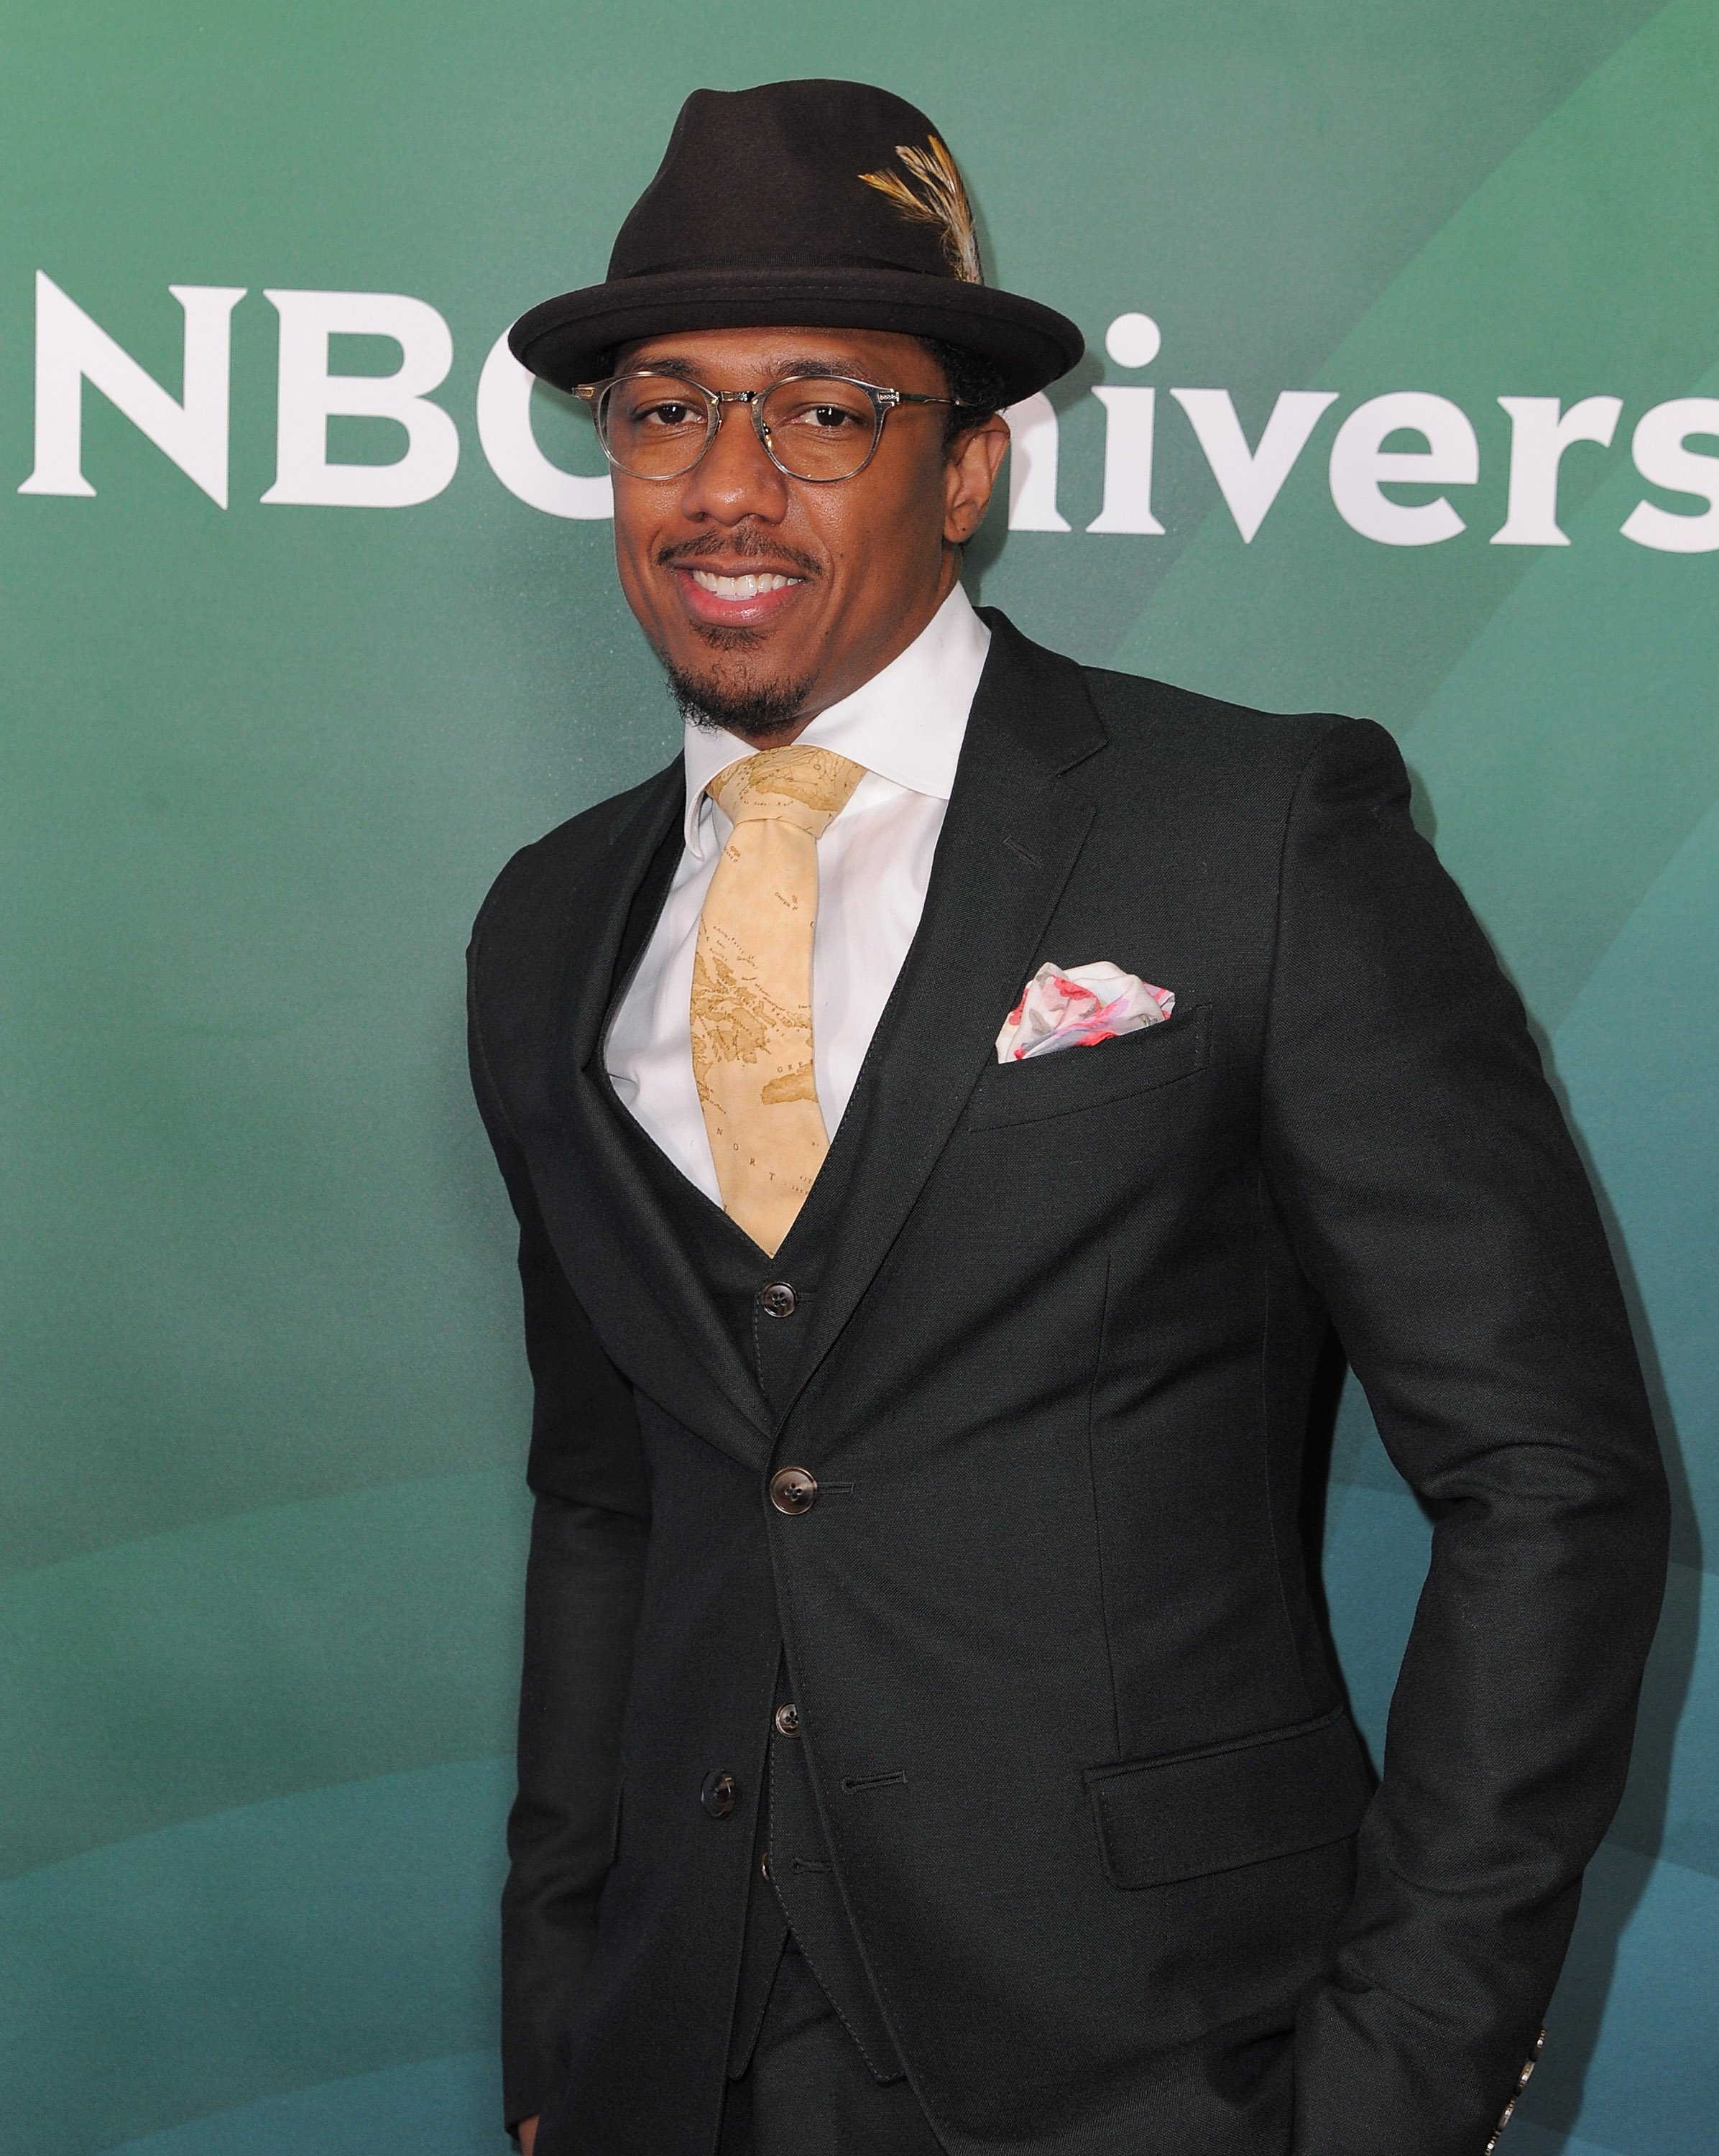 Nick Cannon at the 2016 Winter TCA Tour in California. | Photo: Getty Images